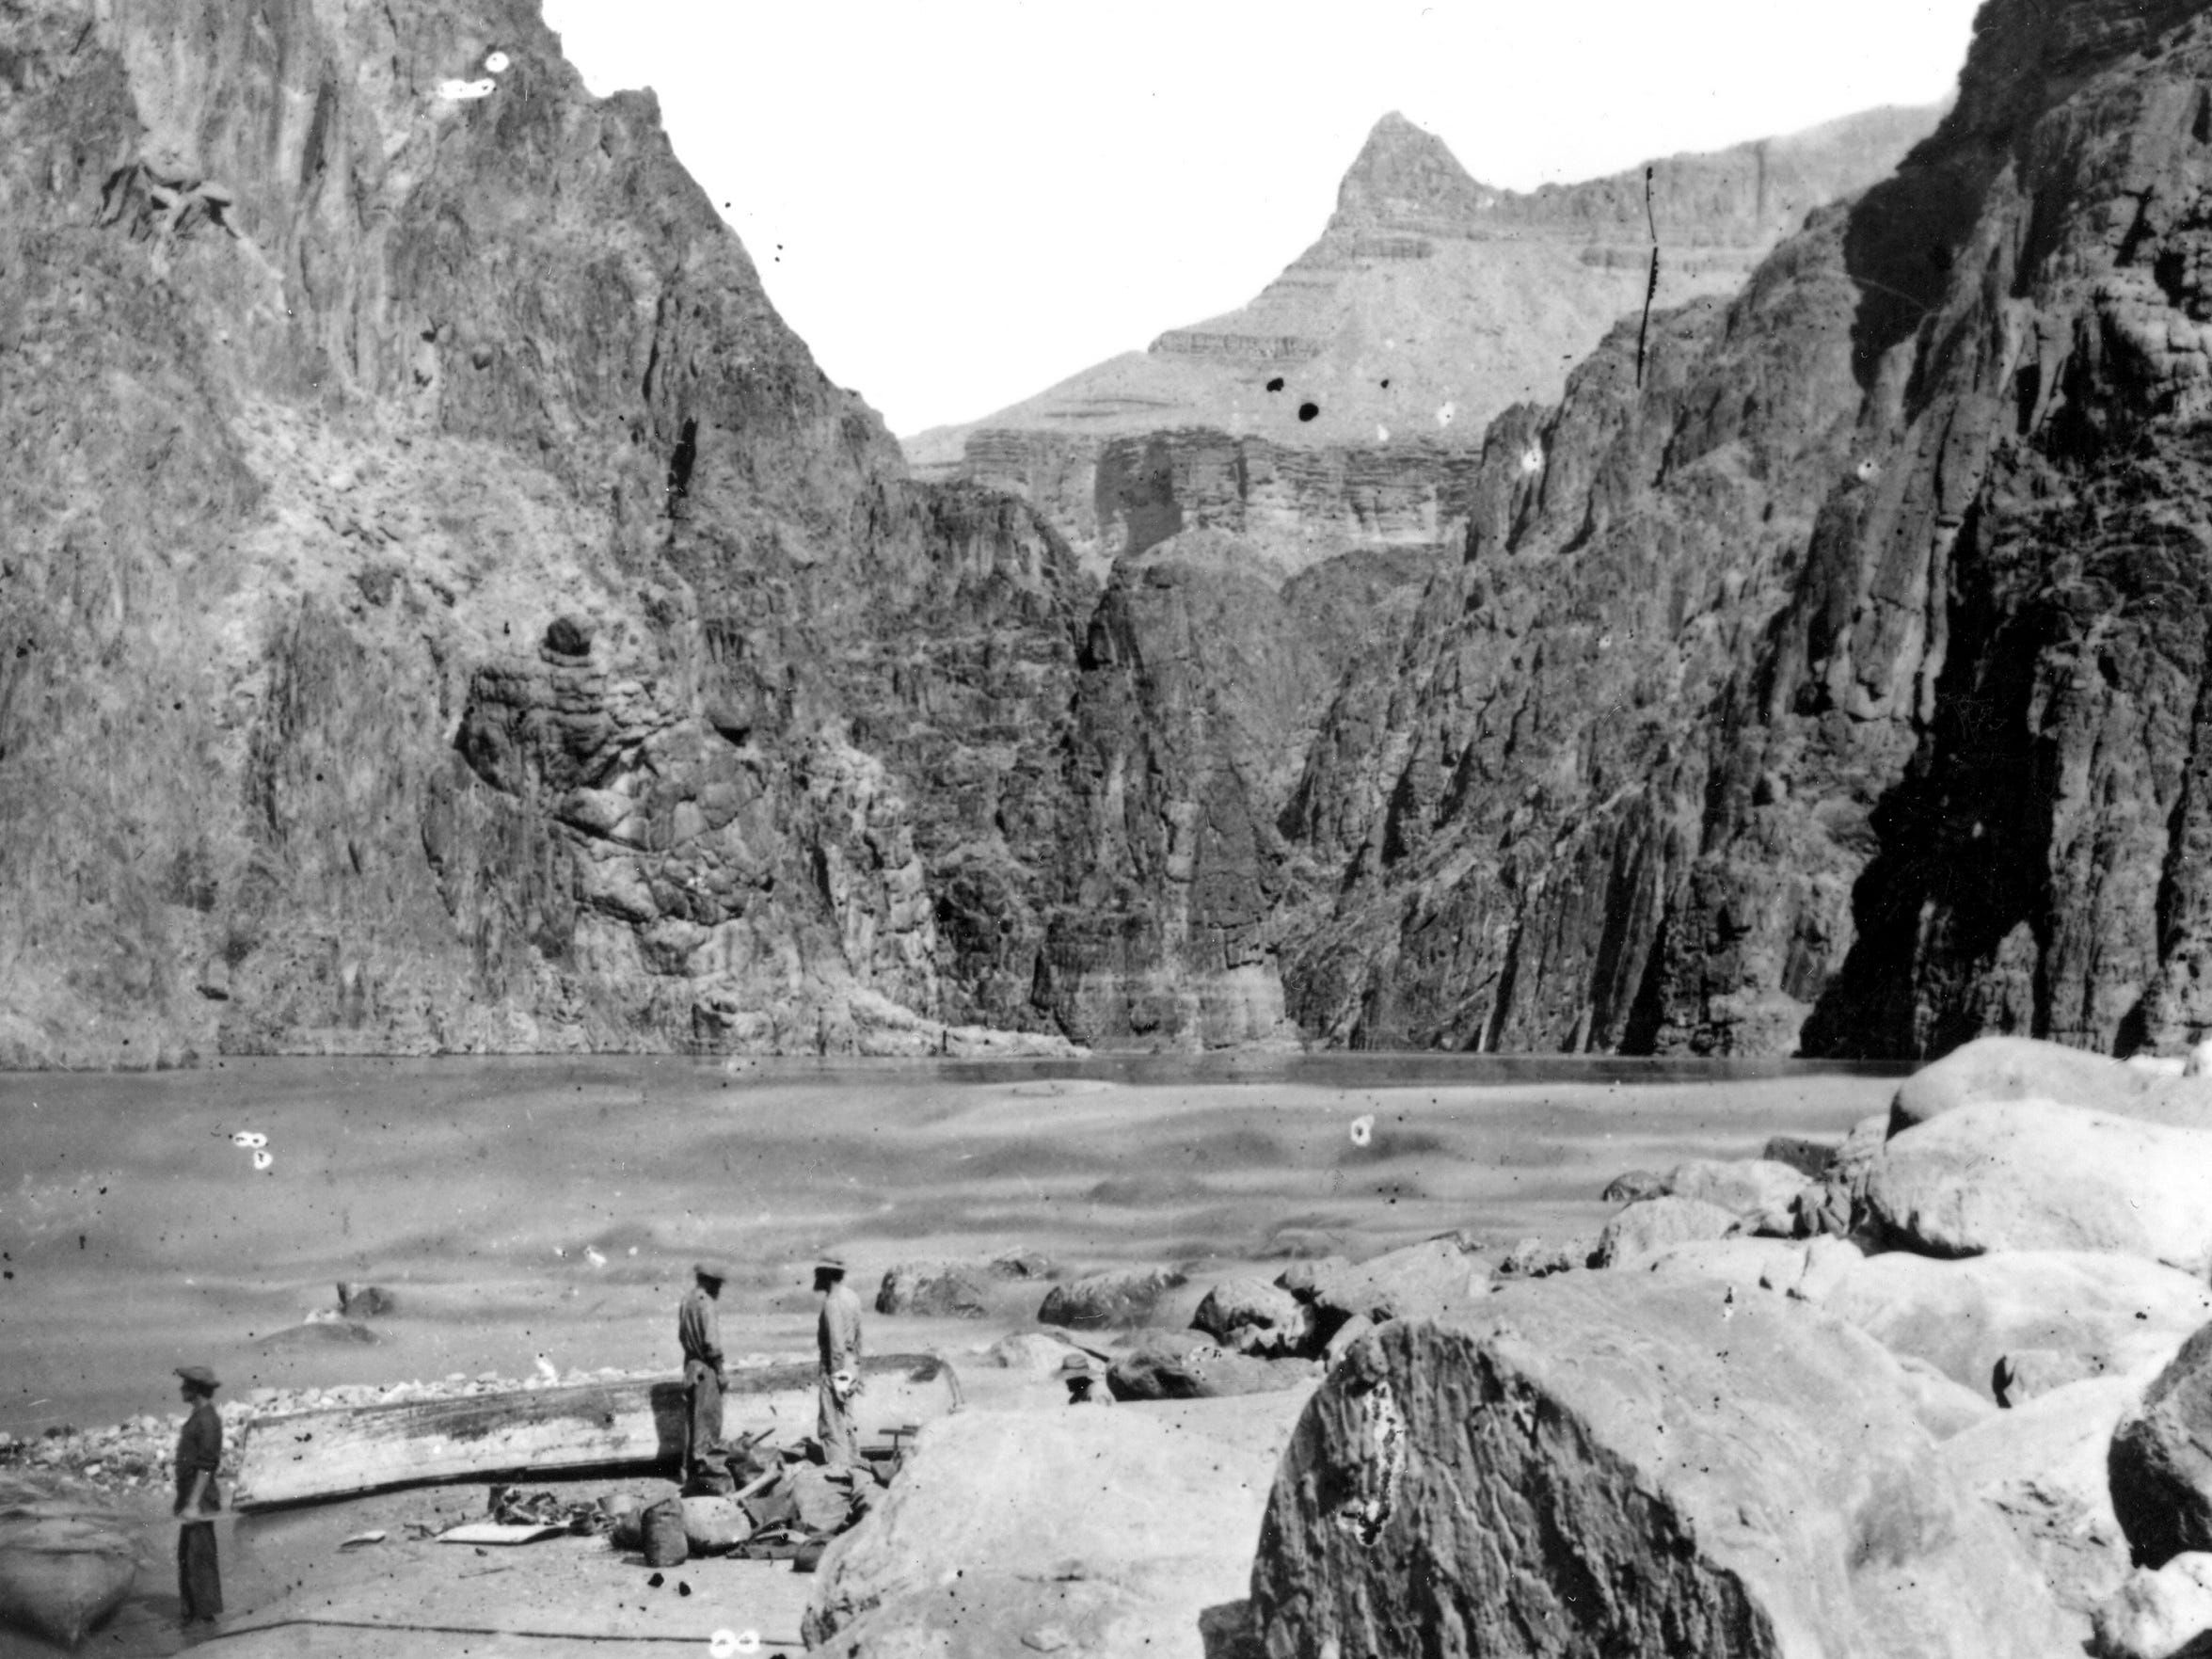 Members of John Wesley Powell's second expedition though the Grand Canyon repair boats in the first granite gorge, 1872.